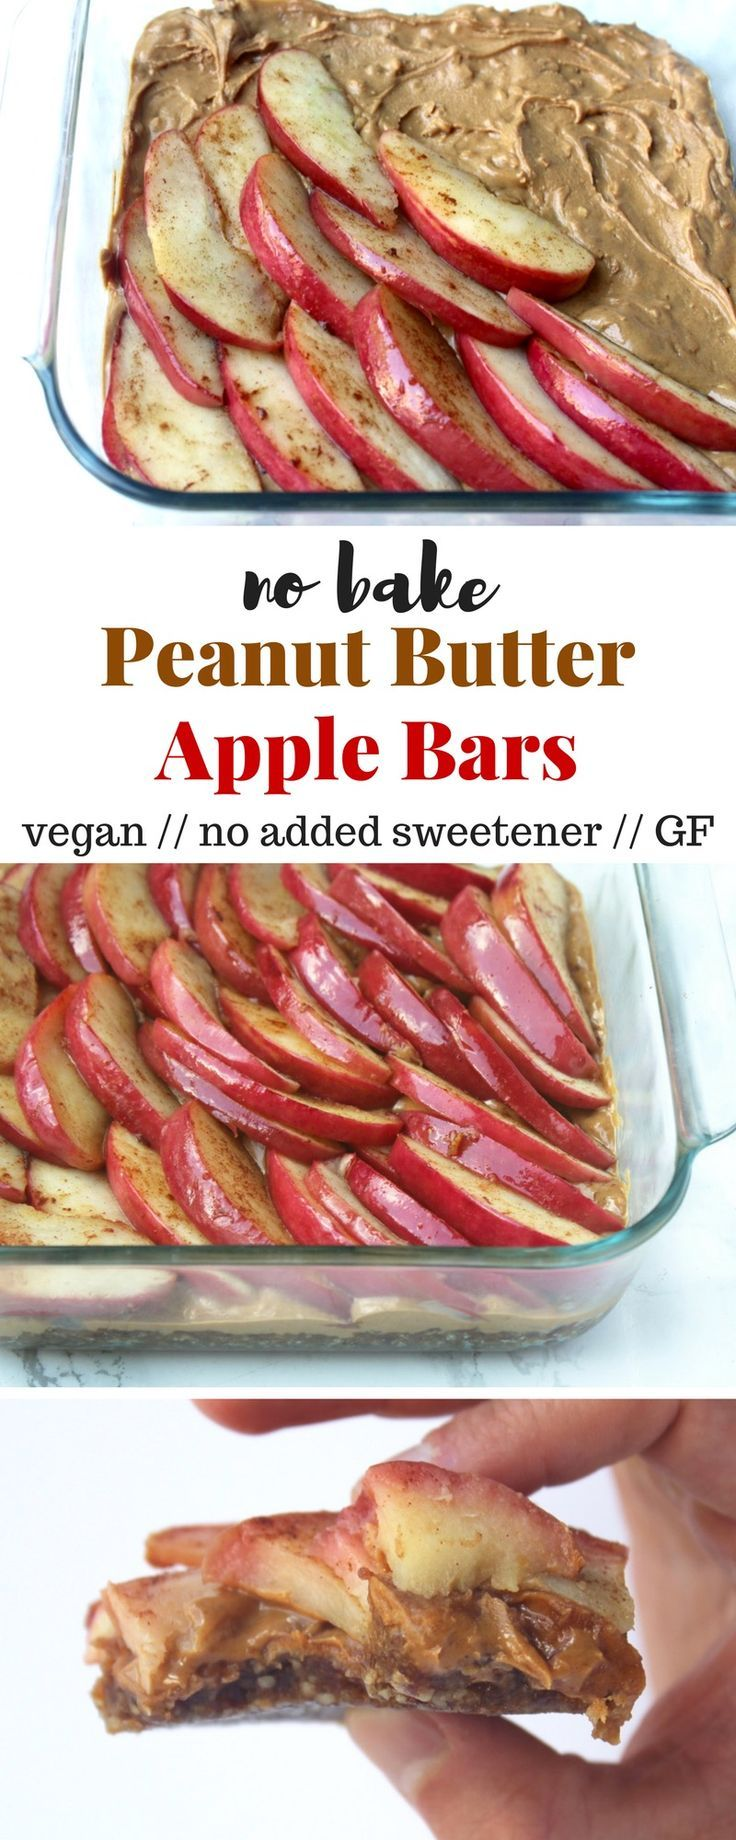 An easy no bake snack bar, these Peanut Butter Apple Bars come together in less than 15 minutes and are free of gluten, grains, and added sweetener! - Eat the Gains